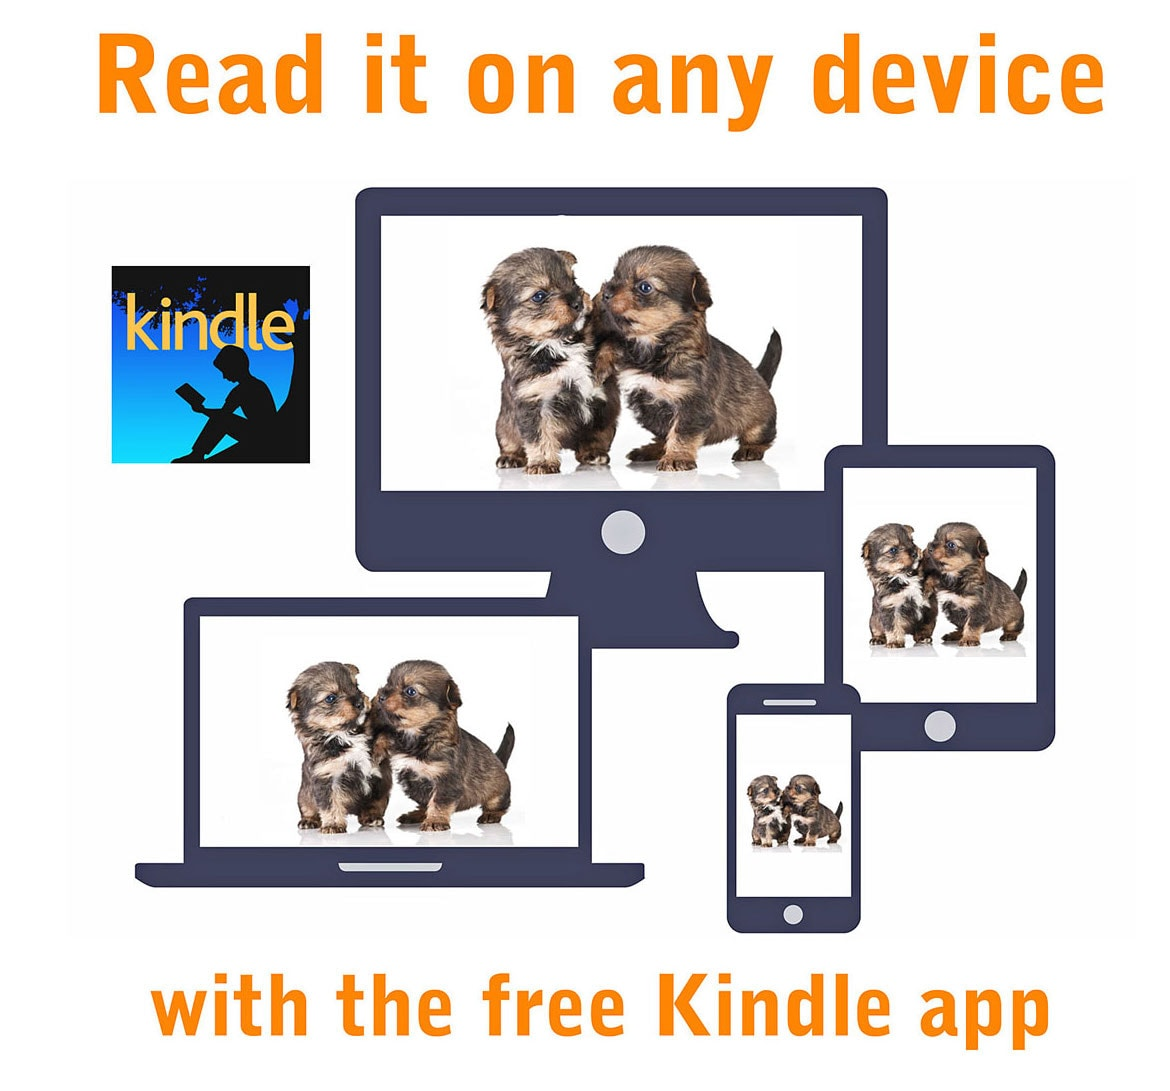 read on any device with kindle